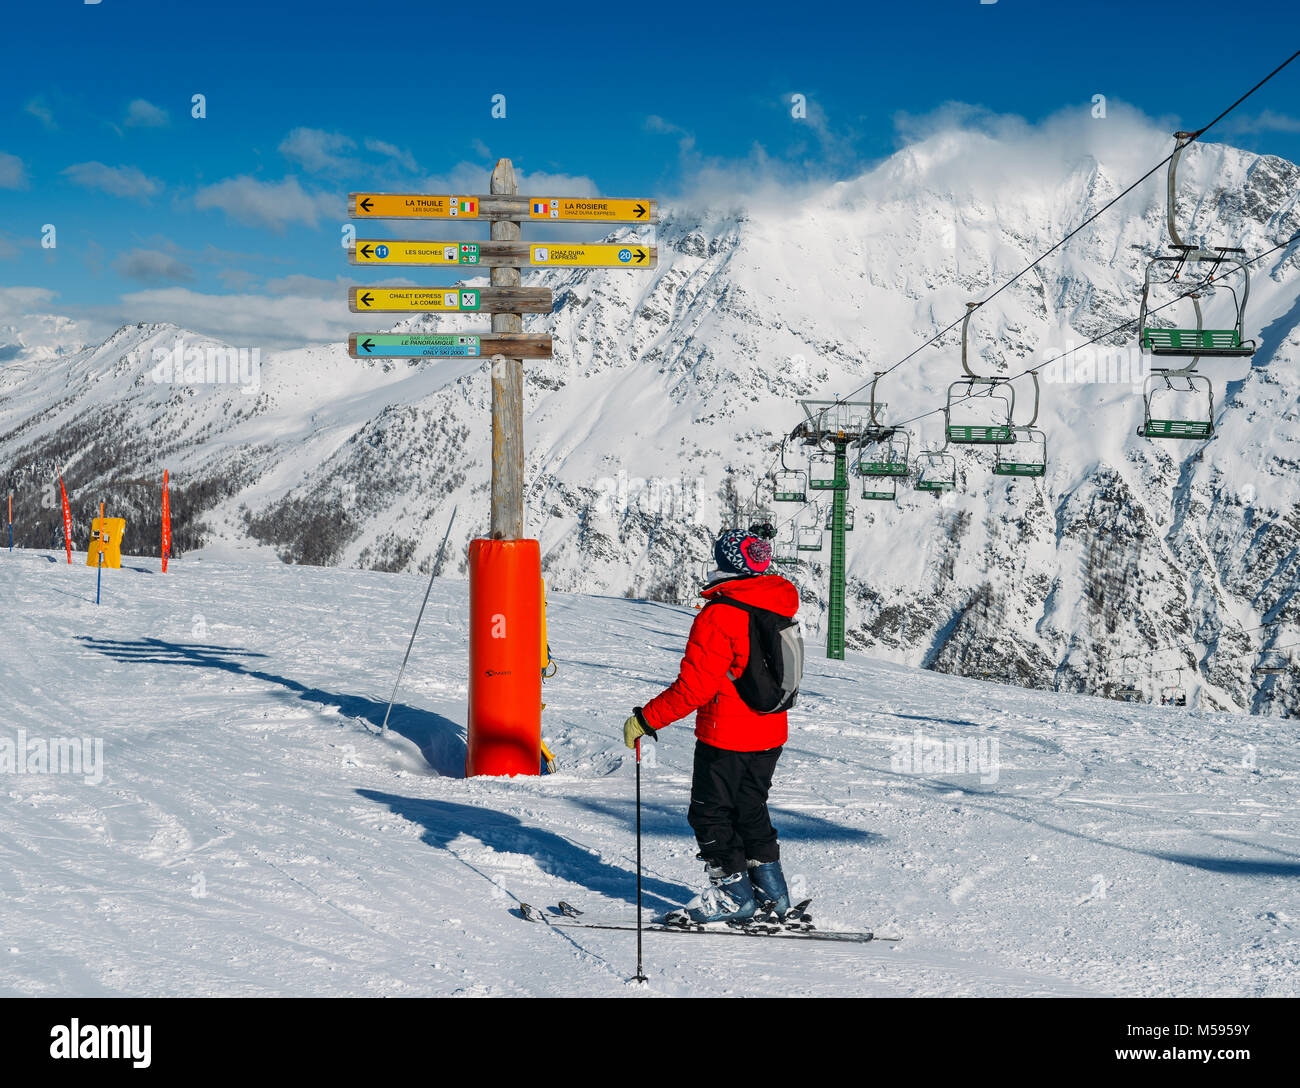 skier-looking-at-signpost-in-the-ski-resort-of-la-thuile-pointing-M5959Y.jpg